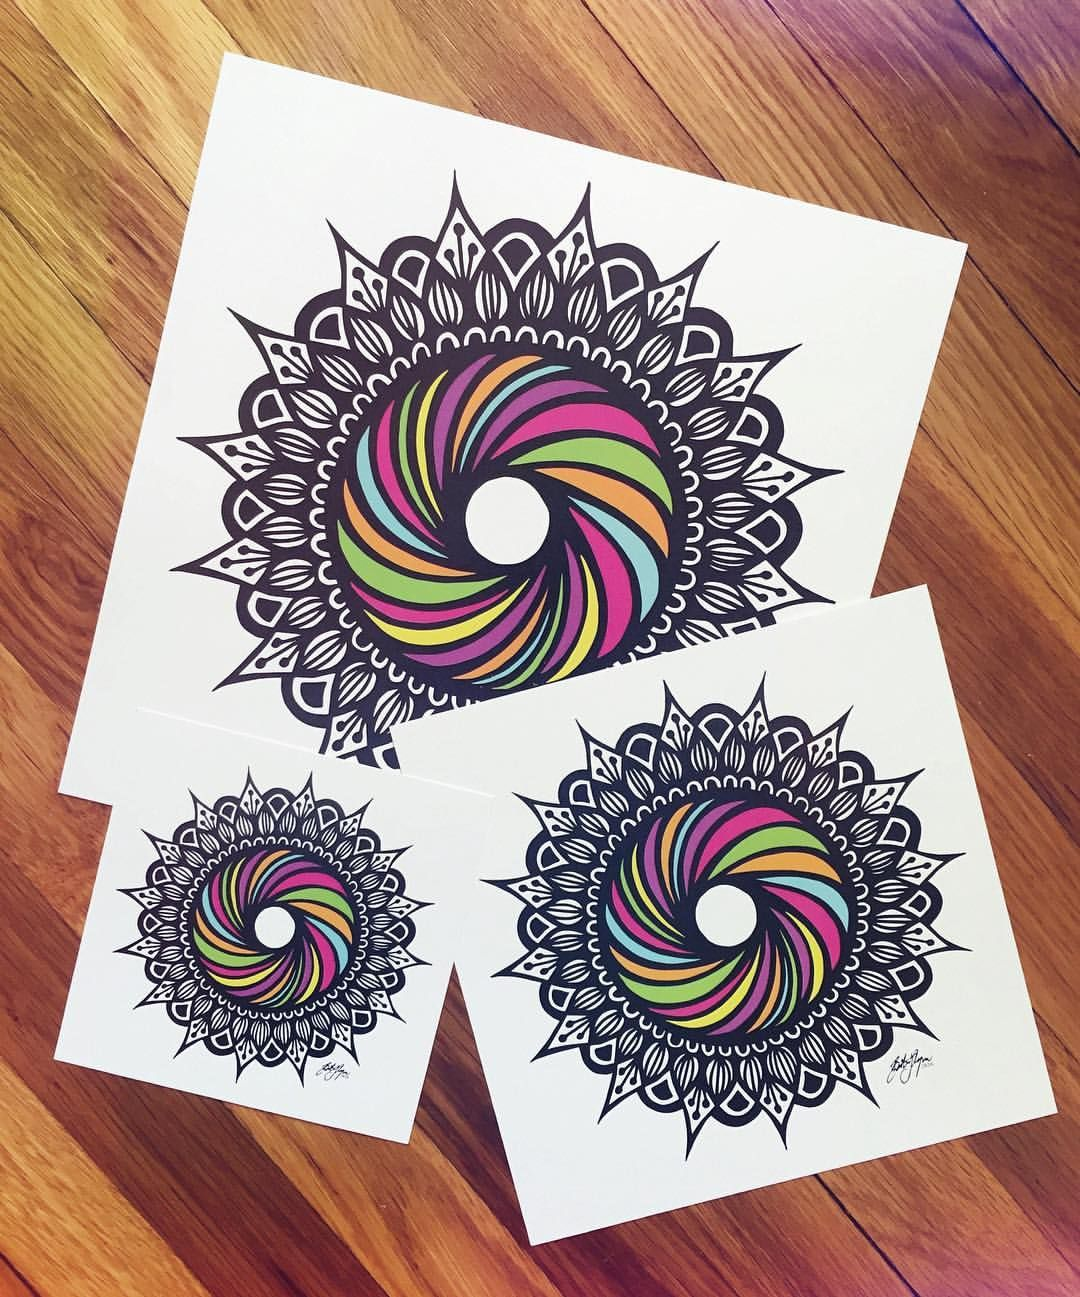 Color art kaleidoscope - Due To Popular Demand Prints Of The Rainbow Swirl Are Available On My Etsy